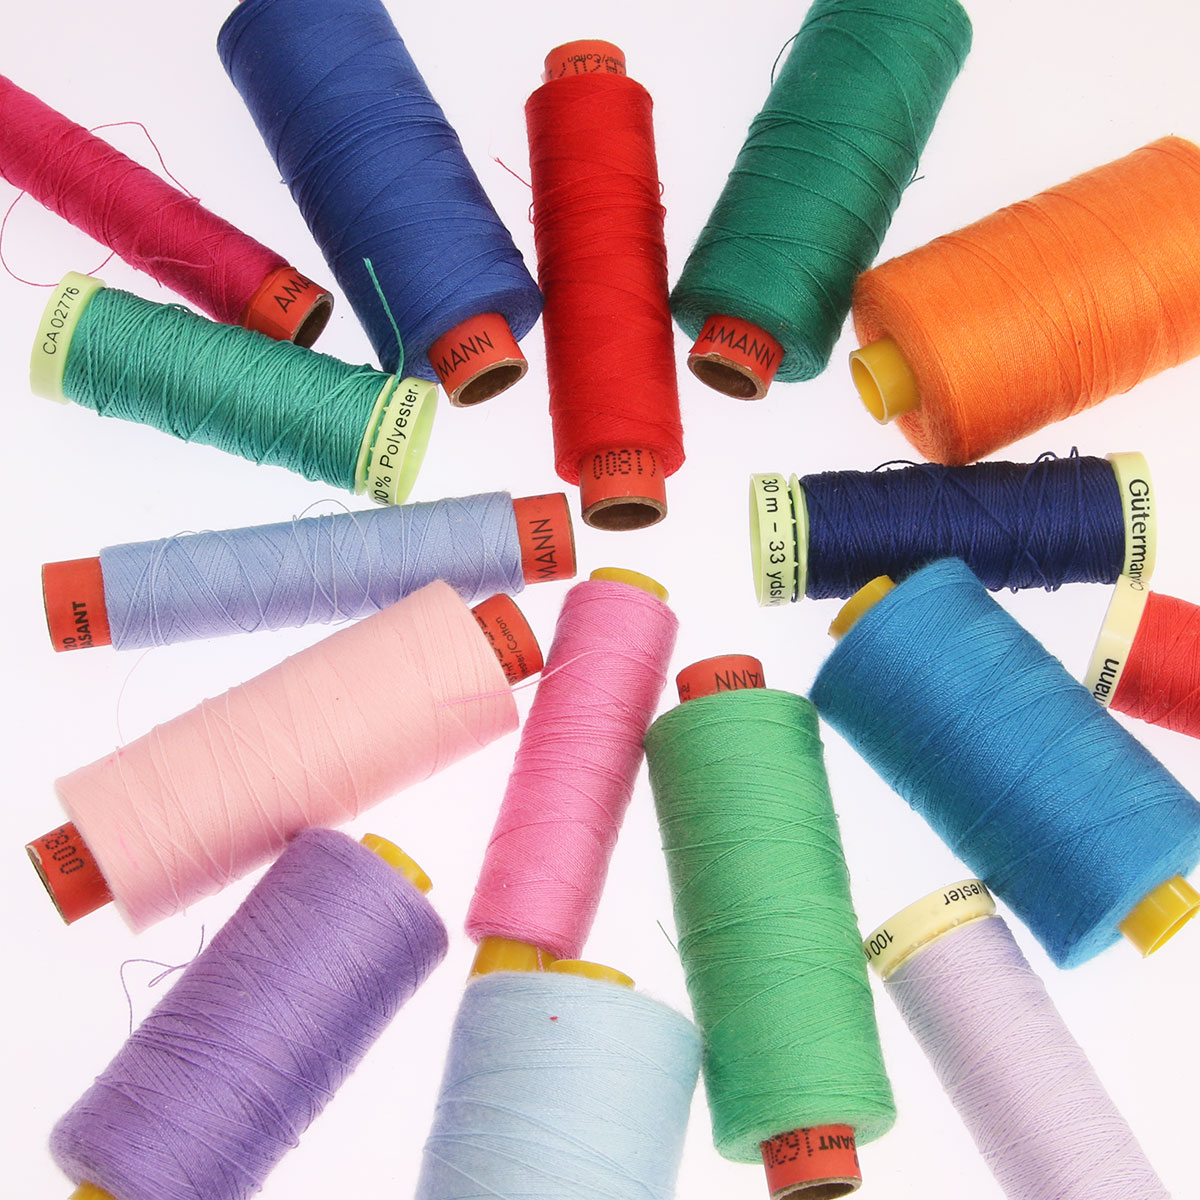 Instructions for the various upholstery   sewing threads